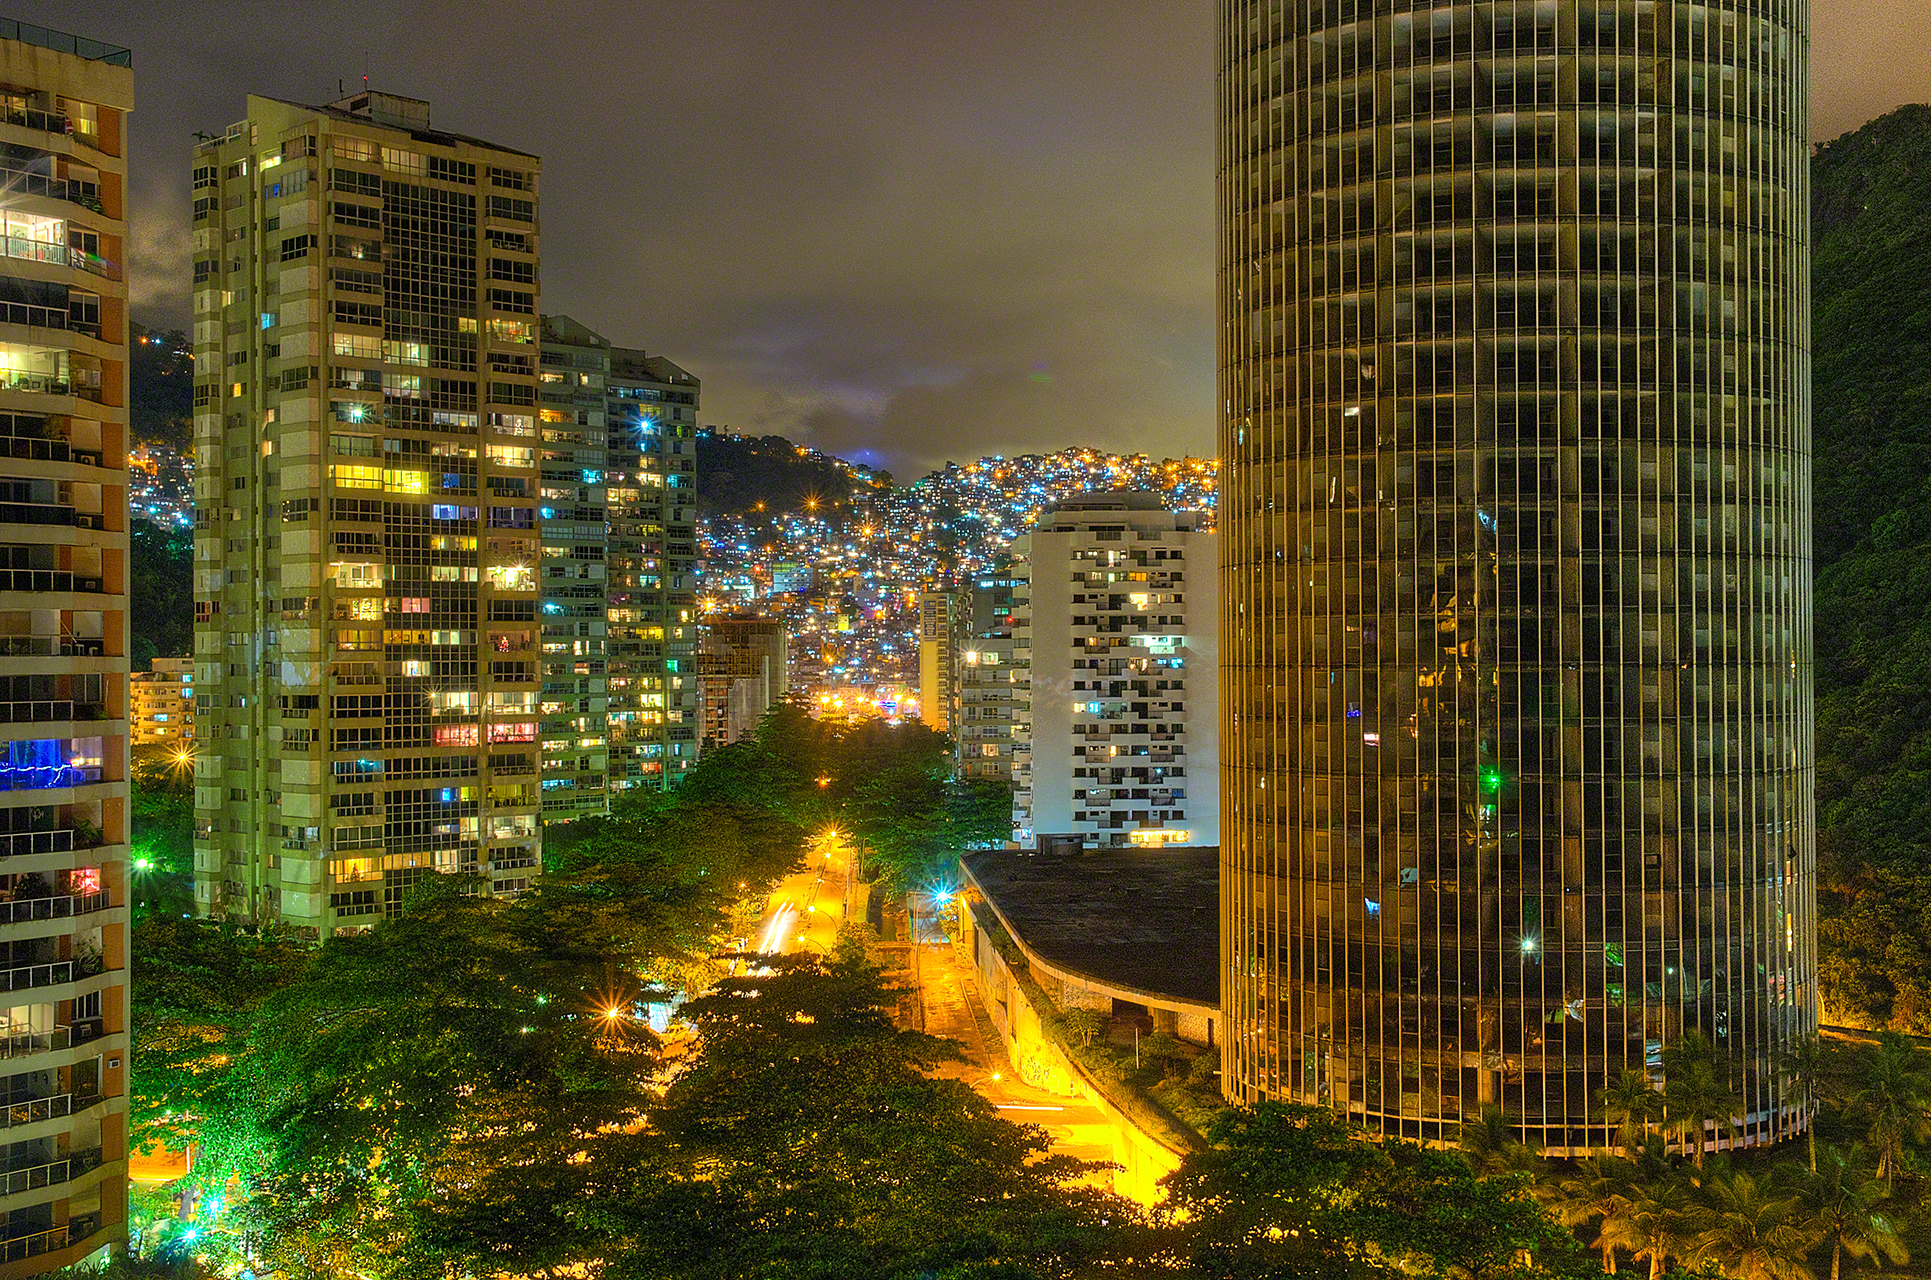 Time Lapse of Towers in Rio